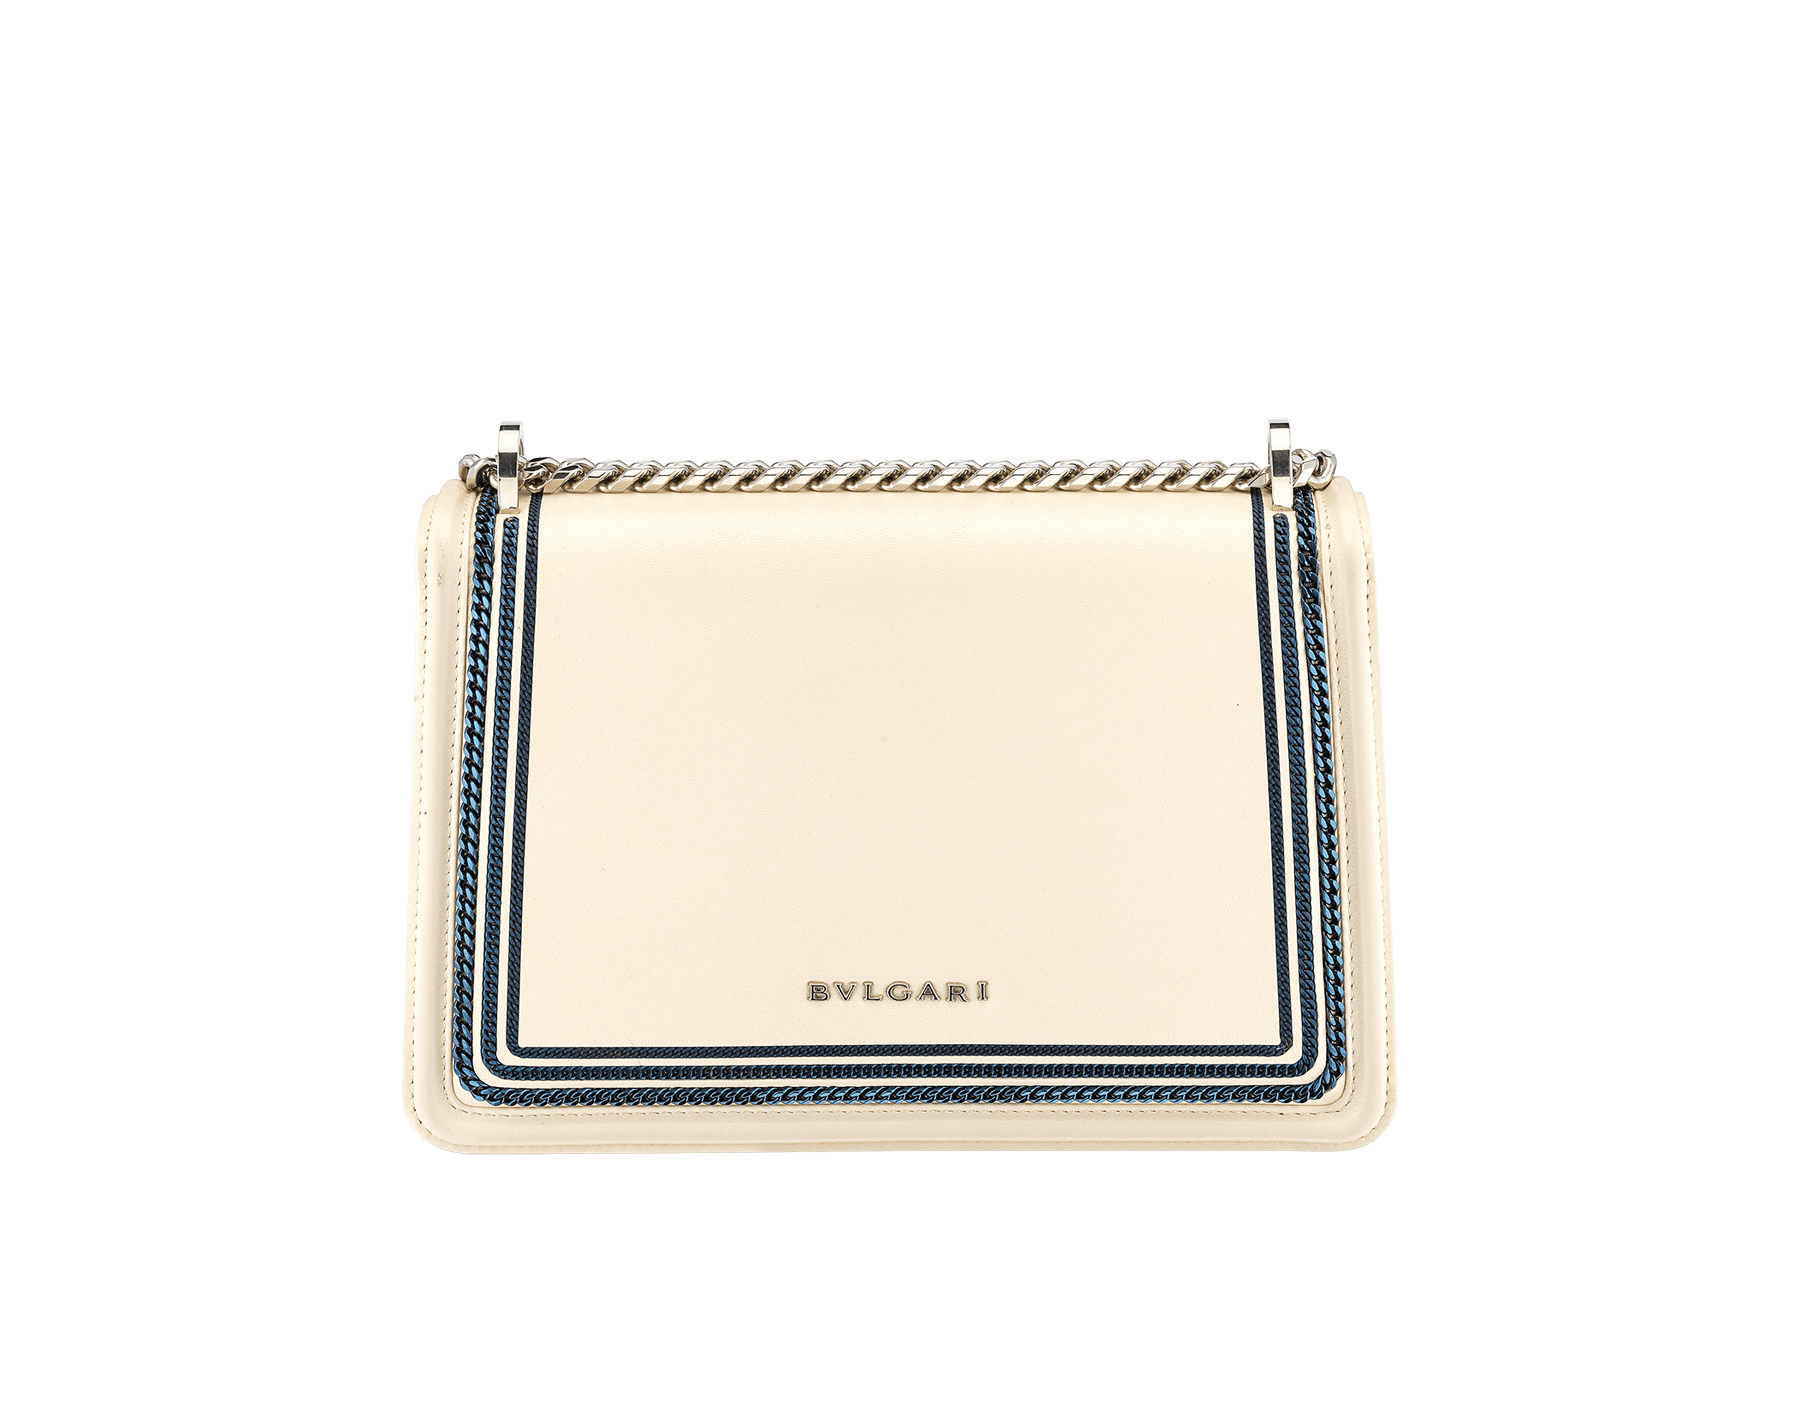 """""""Serpenti Diamond Blast"""" shoulder bag in Ivory Opal white smooth calf leather, featuring a Teal Topaz green 3-Maxi Chain motif, and an Aquamarine light blue nappa leather internal lining. Tempting snakehead closure in palladium-plated brass, embellished with Teal Topaz green and Ivory Opal white enamel, and black onyx eyes. 291173 image 5"""